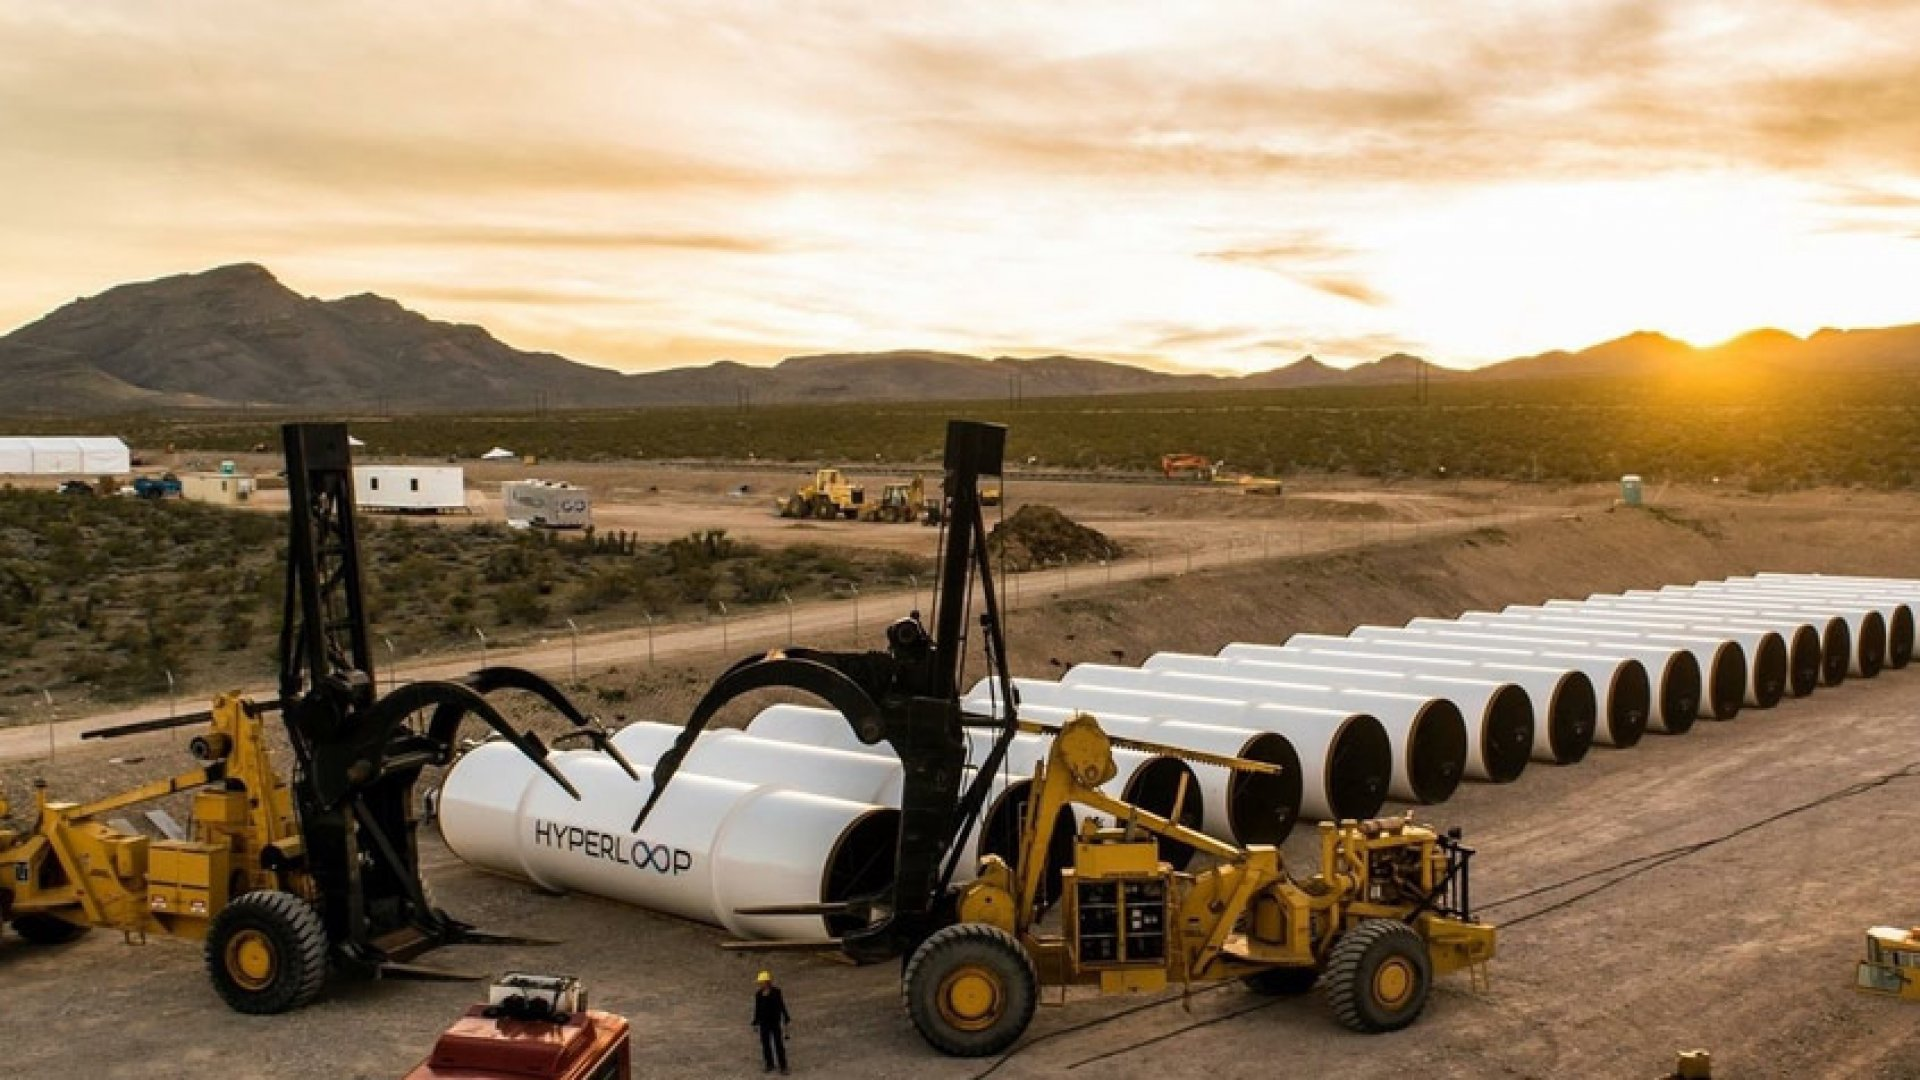 The Hyperloop Just Completed Its First Test Run--and Raised $80 Million